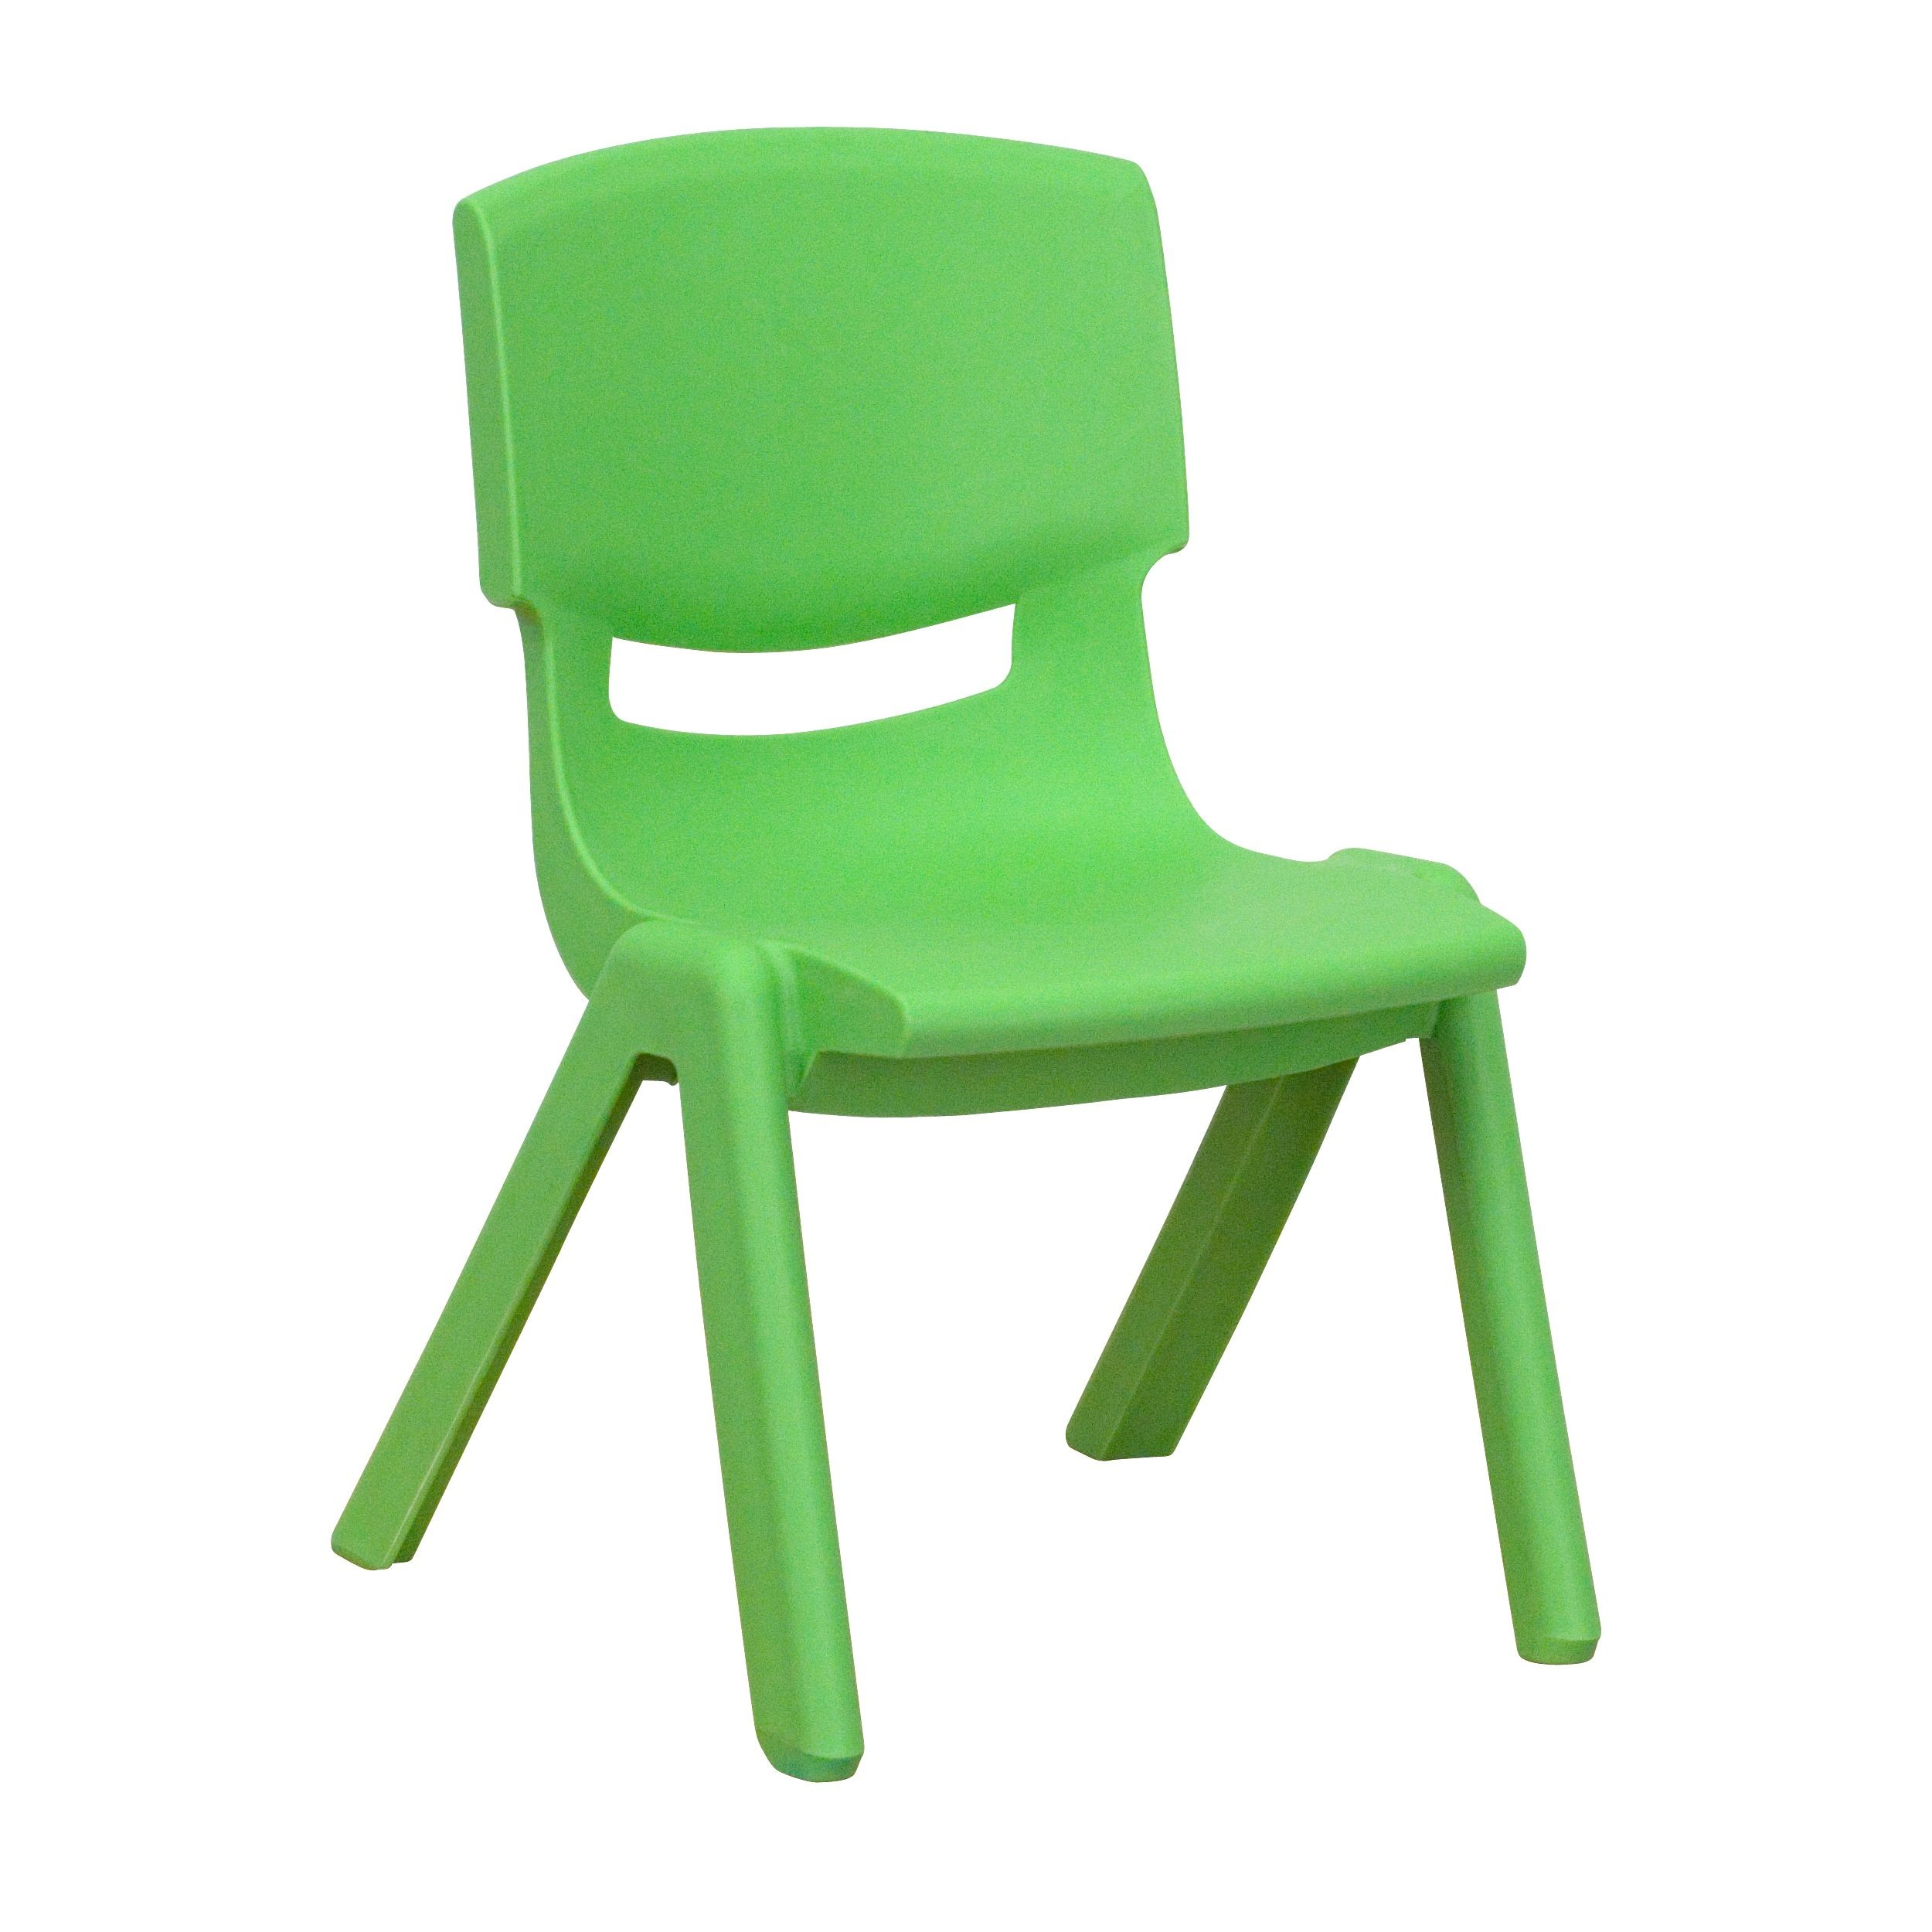 """Flash Furniture YU-YCX-003-GREEN-GG Green Plastic Stackable School Chair with 10.5"""" Seat Height"""